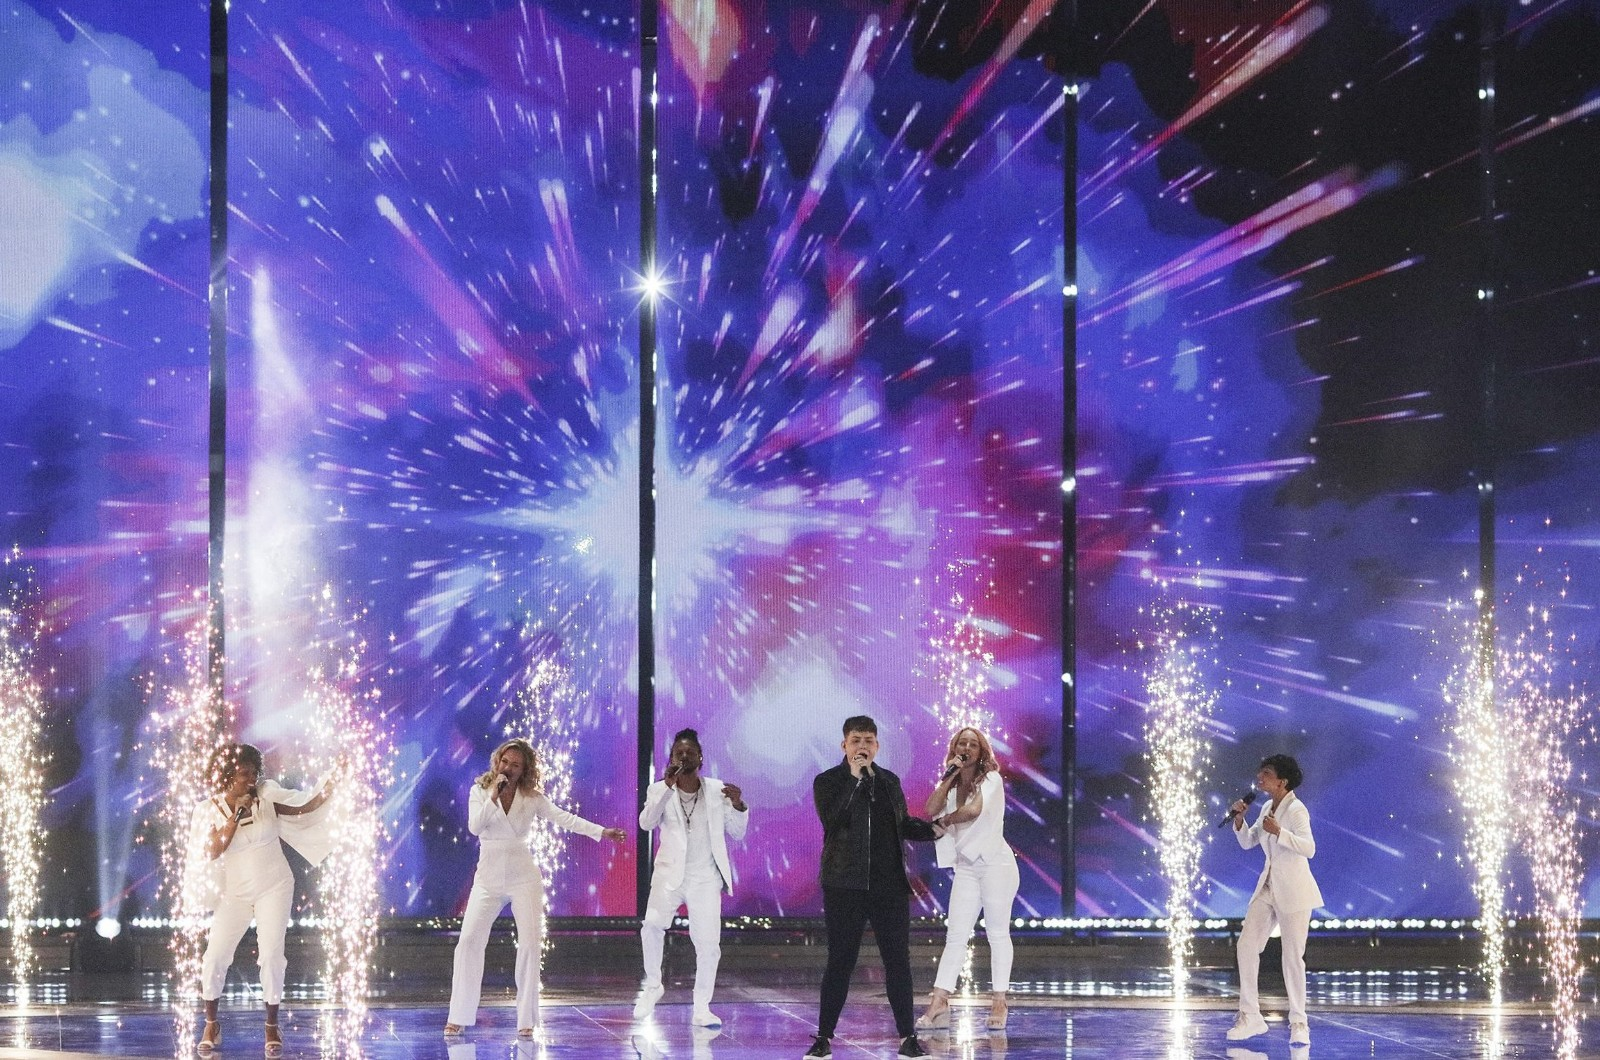 Michael Rice performs during the rehearsal ahead of the grand final of the 2019 Eurovision Song Contest, 17 May 2019 in Tel Aviv, Israel.